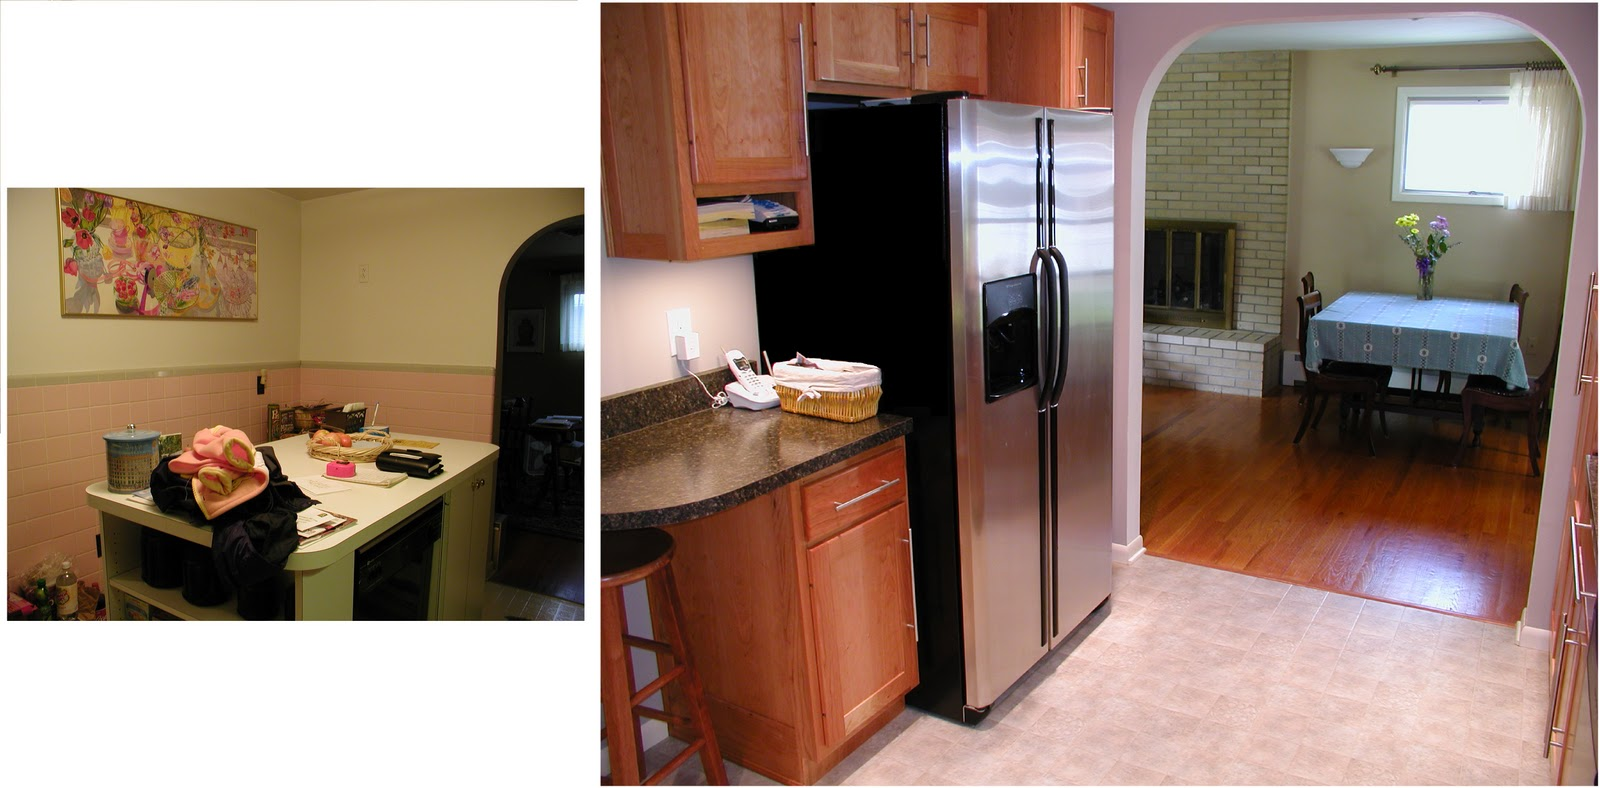 How To Prepare Kitchen Cabinets For Painting Henderson S Home Improvement Llc Kitchens